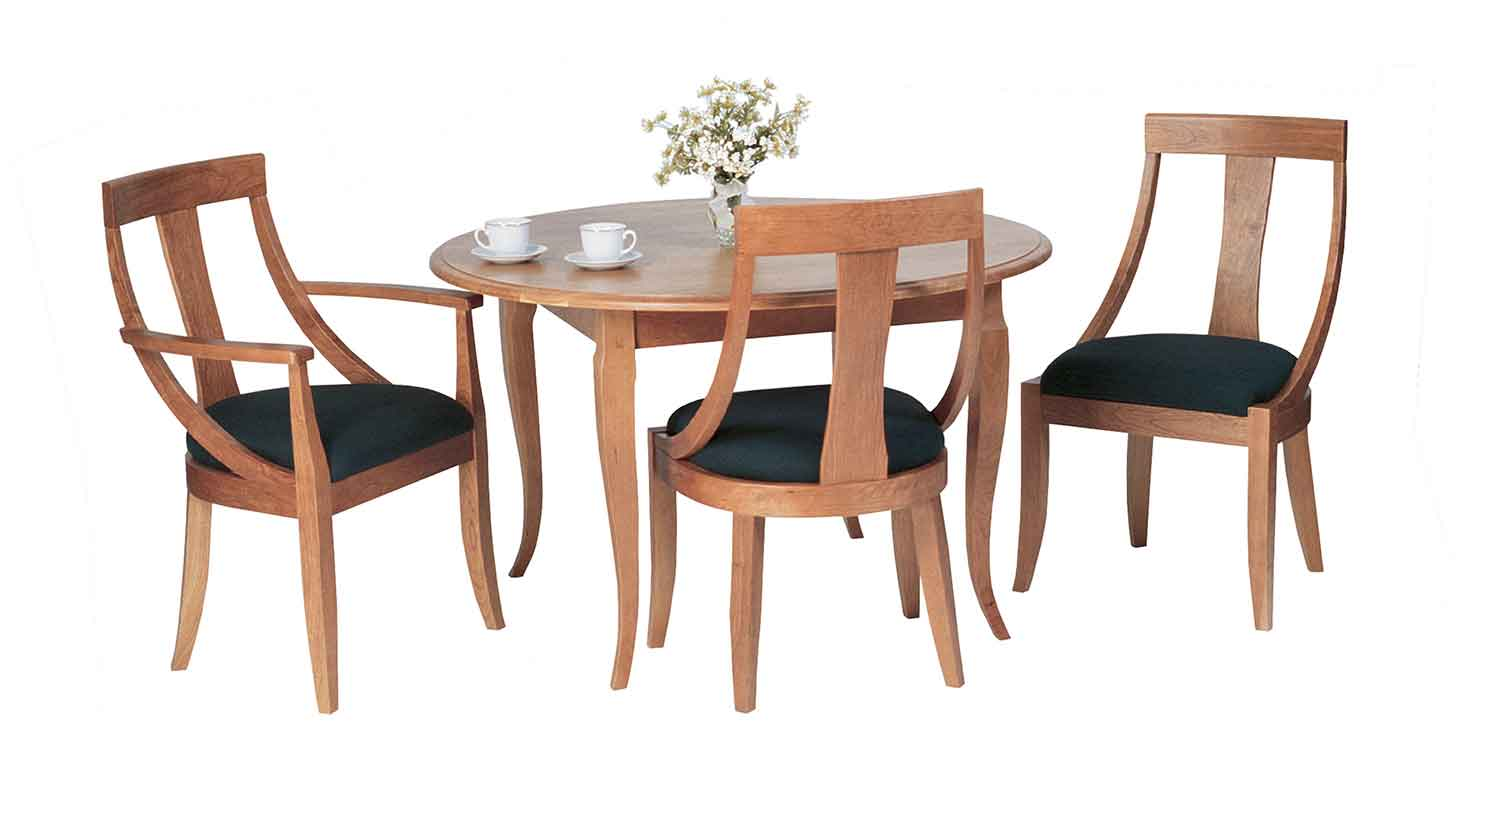 Circle furniture round french country table dining ma for French round dining table